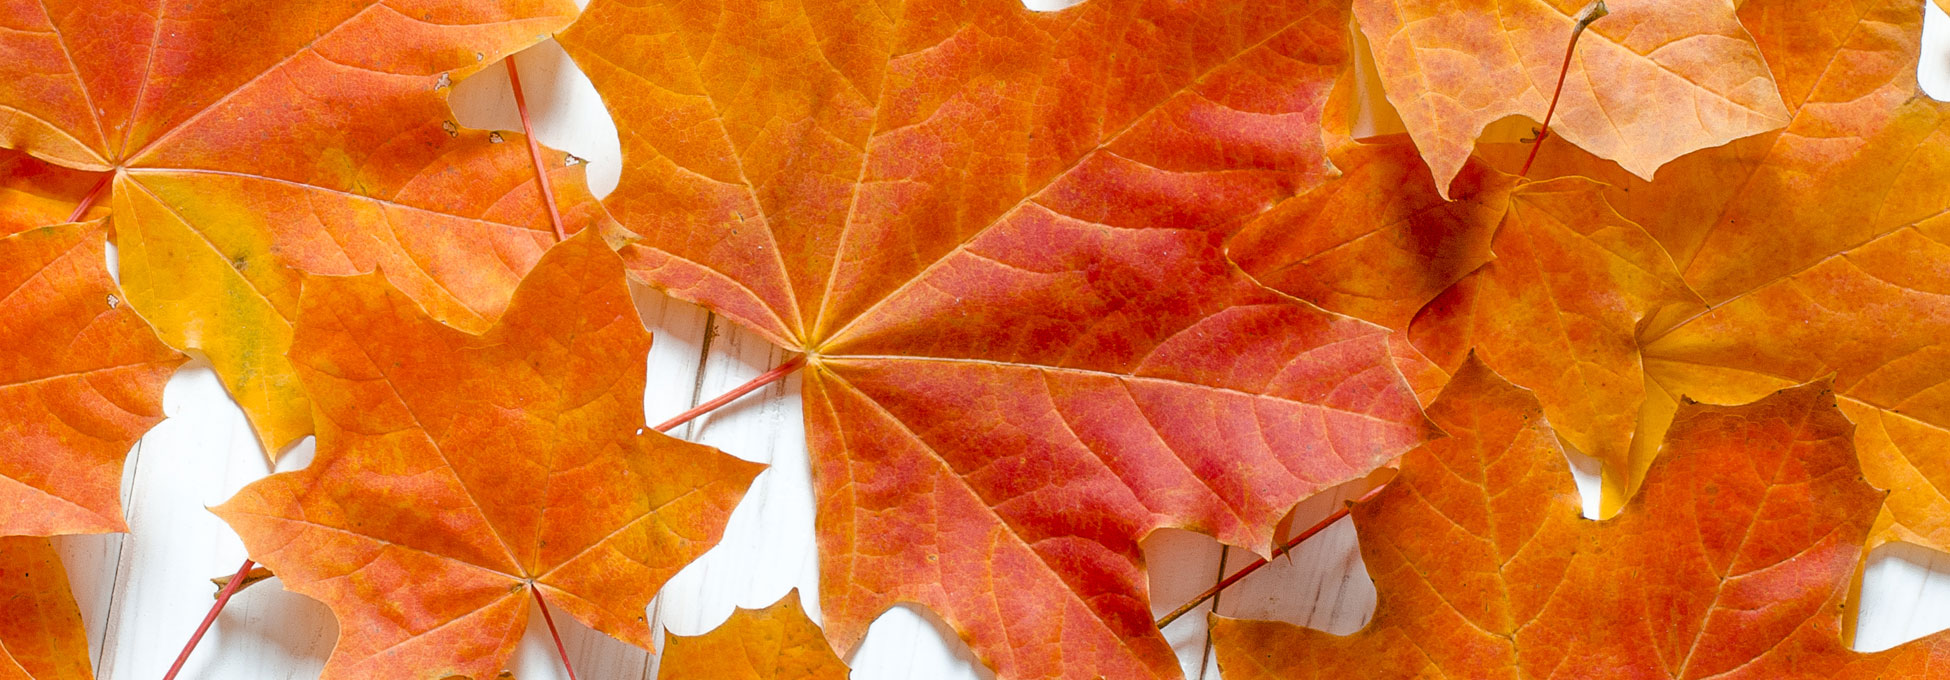 trigs-homepg-Fall-leaves.jpg